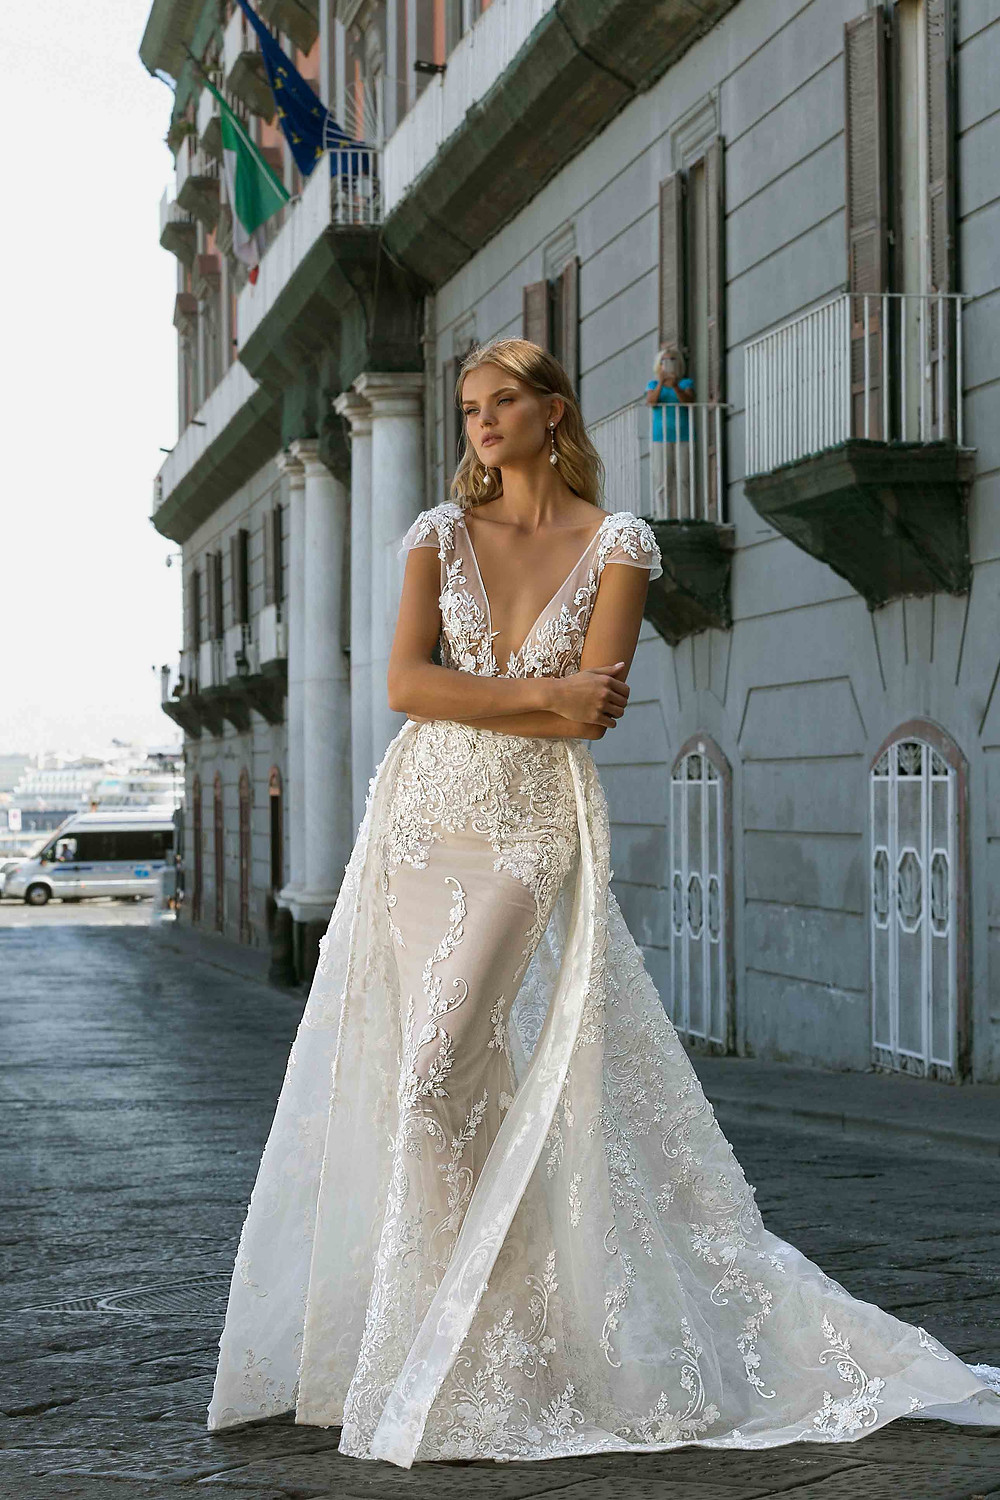 A Berta 2020 lace mermaid wedding dress, with low v neckline and detachable skirt